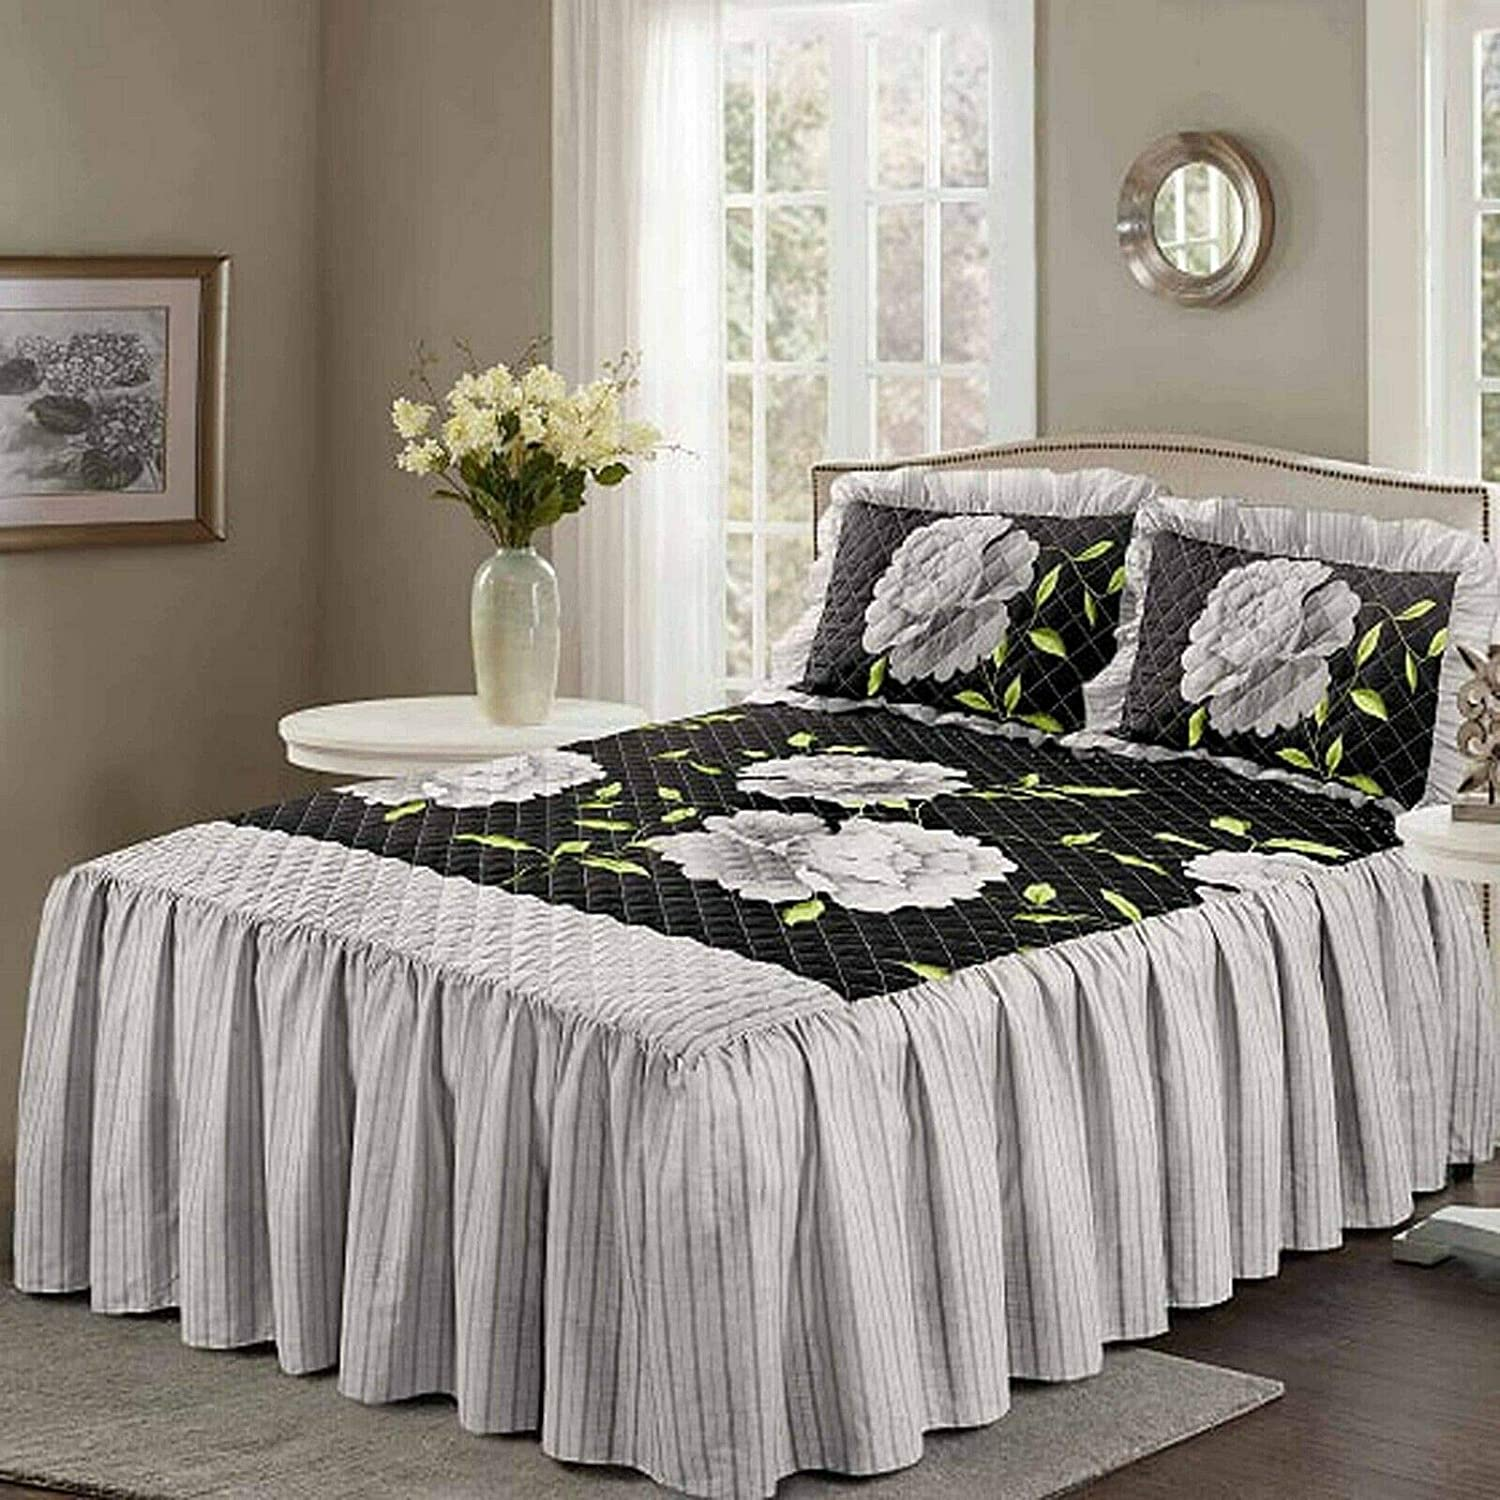 Camilla Black, Double QM Quest-Mart/® Luxuries Quilted Bed Spreads with 23 Deep Frill Floral /& Stripes Designs NZ